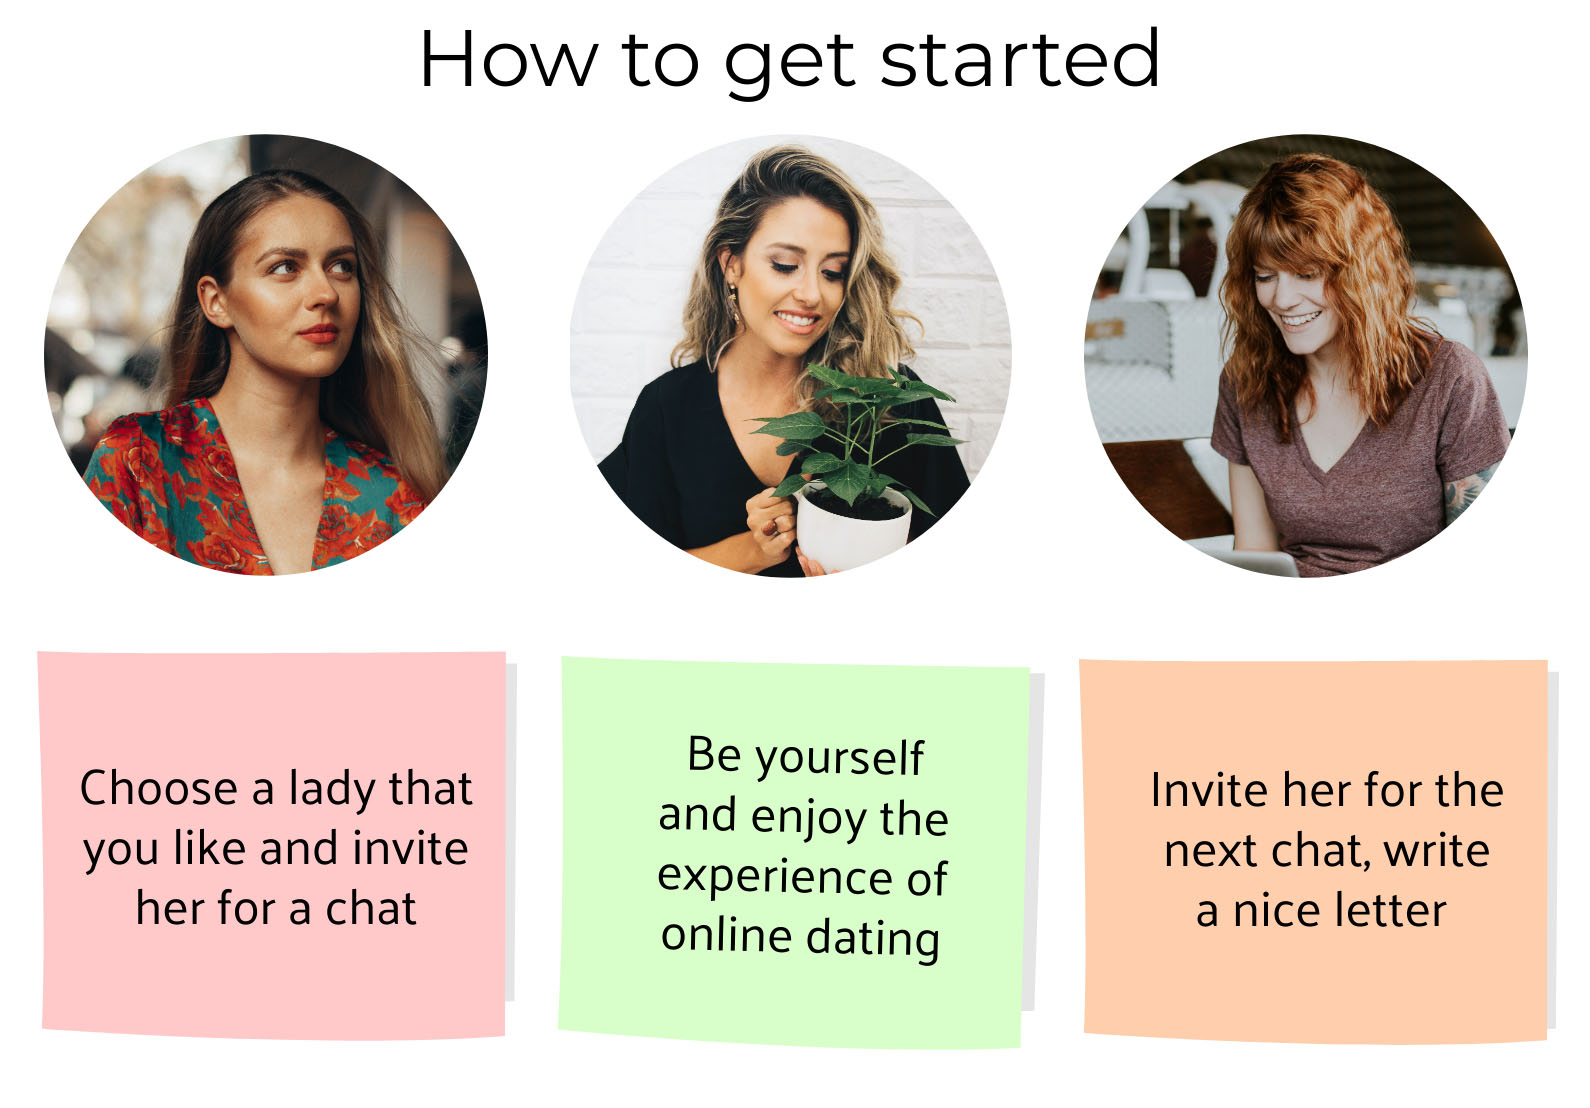 Chat with Girls - How to Get Started